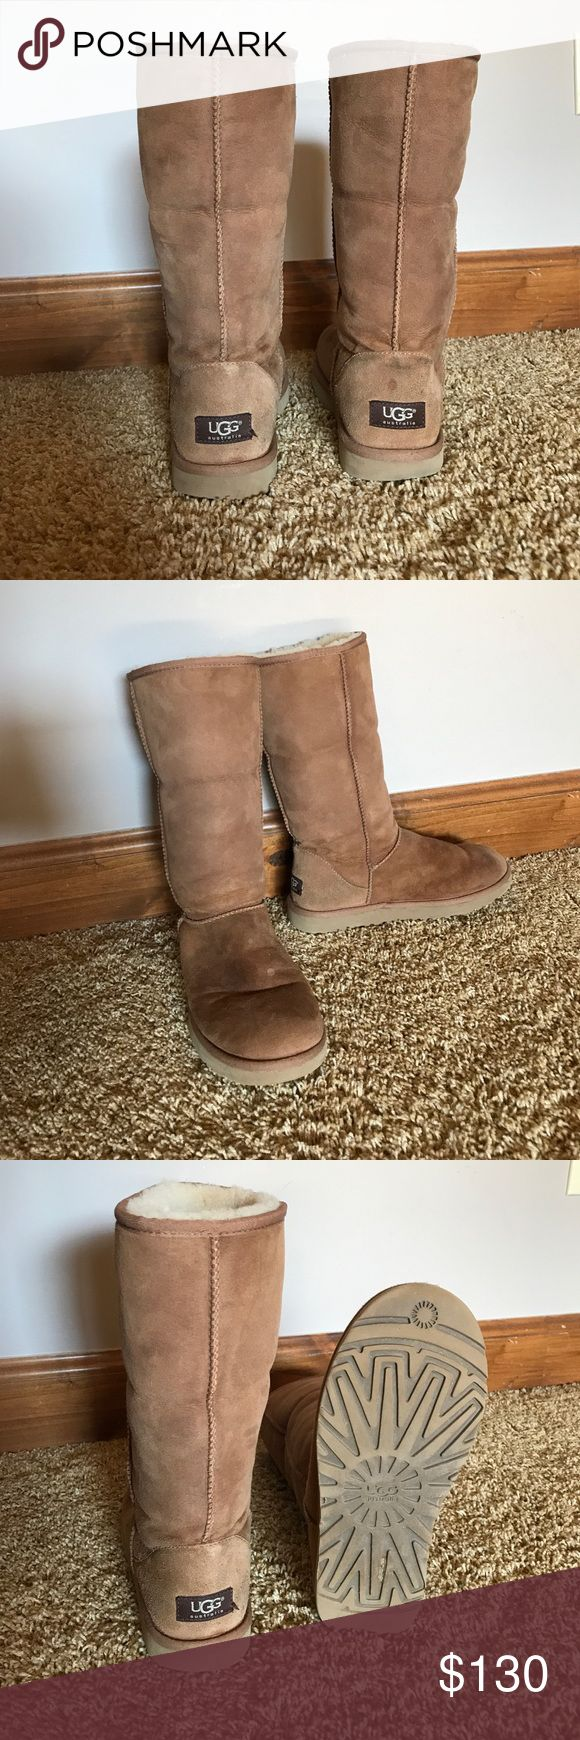 Authentic Chestnut Classic II Tall UGG Boots Chestnut (color) suede Ugg boots in Classic Tall style. Sheepskin insole. Slightly noticeable water damage on the top, but still in great condition. Very warm boots with good traction. UGG Shoes Winter & Rain Boots